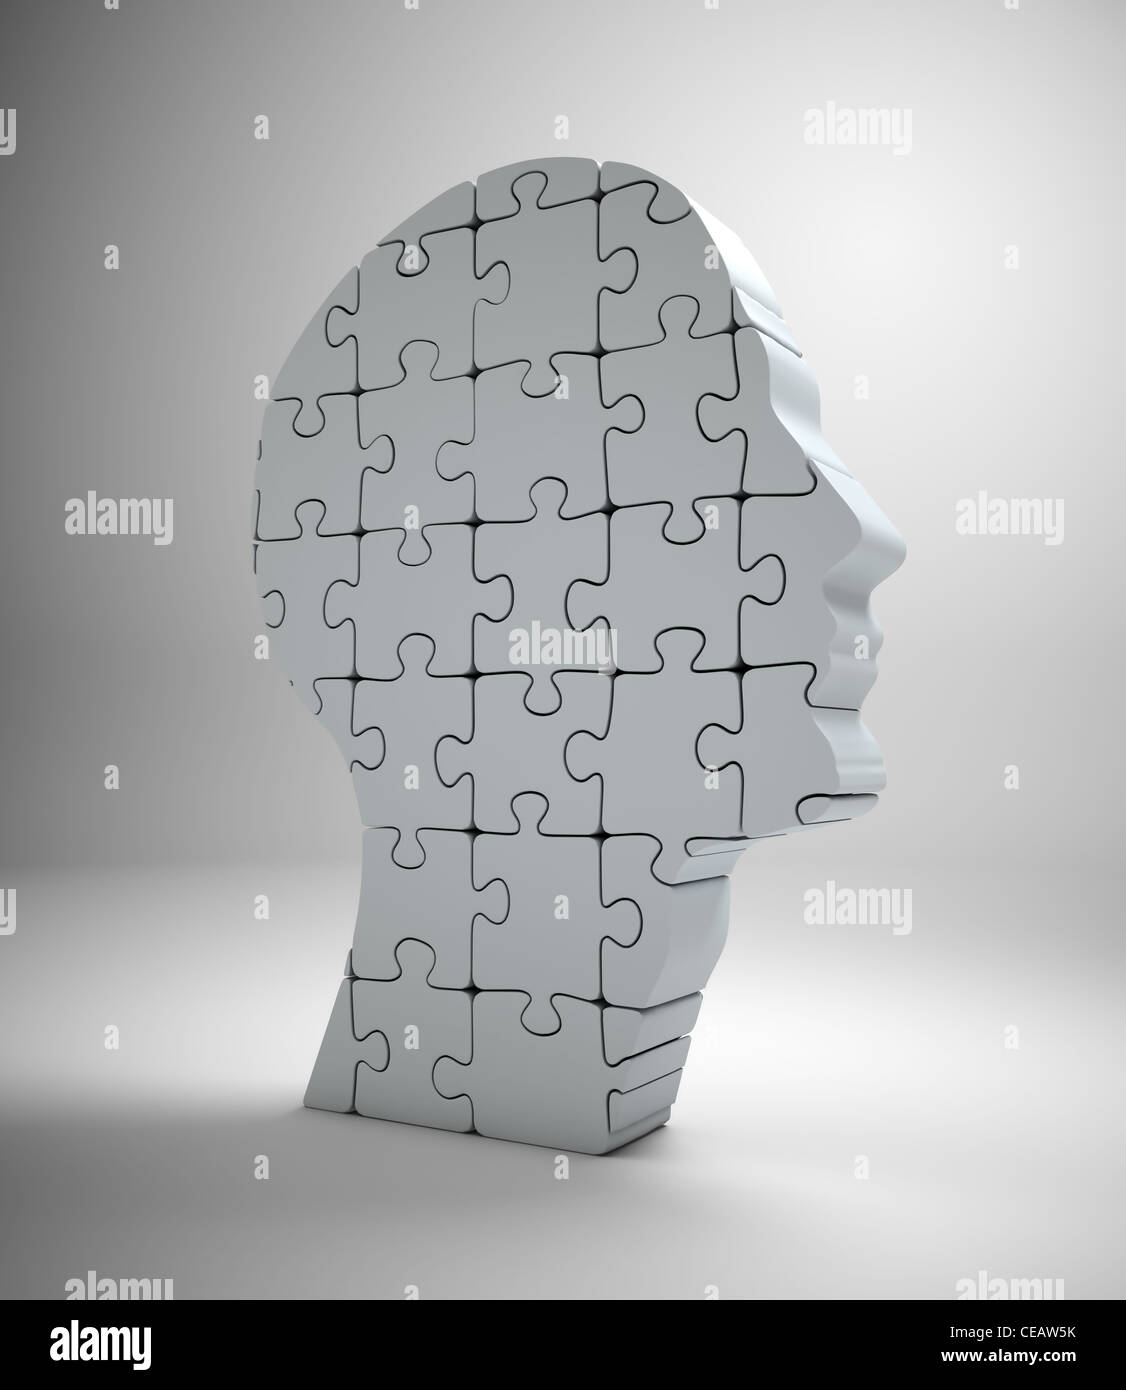 A male head build out of puzzle pieces - Stock Image